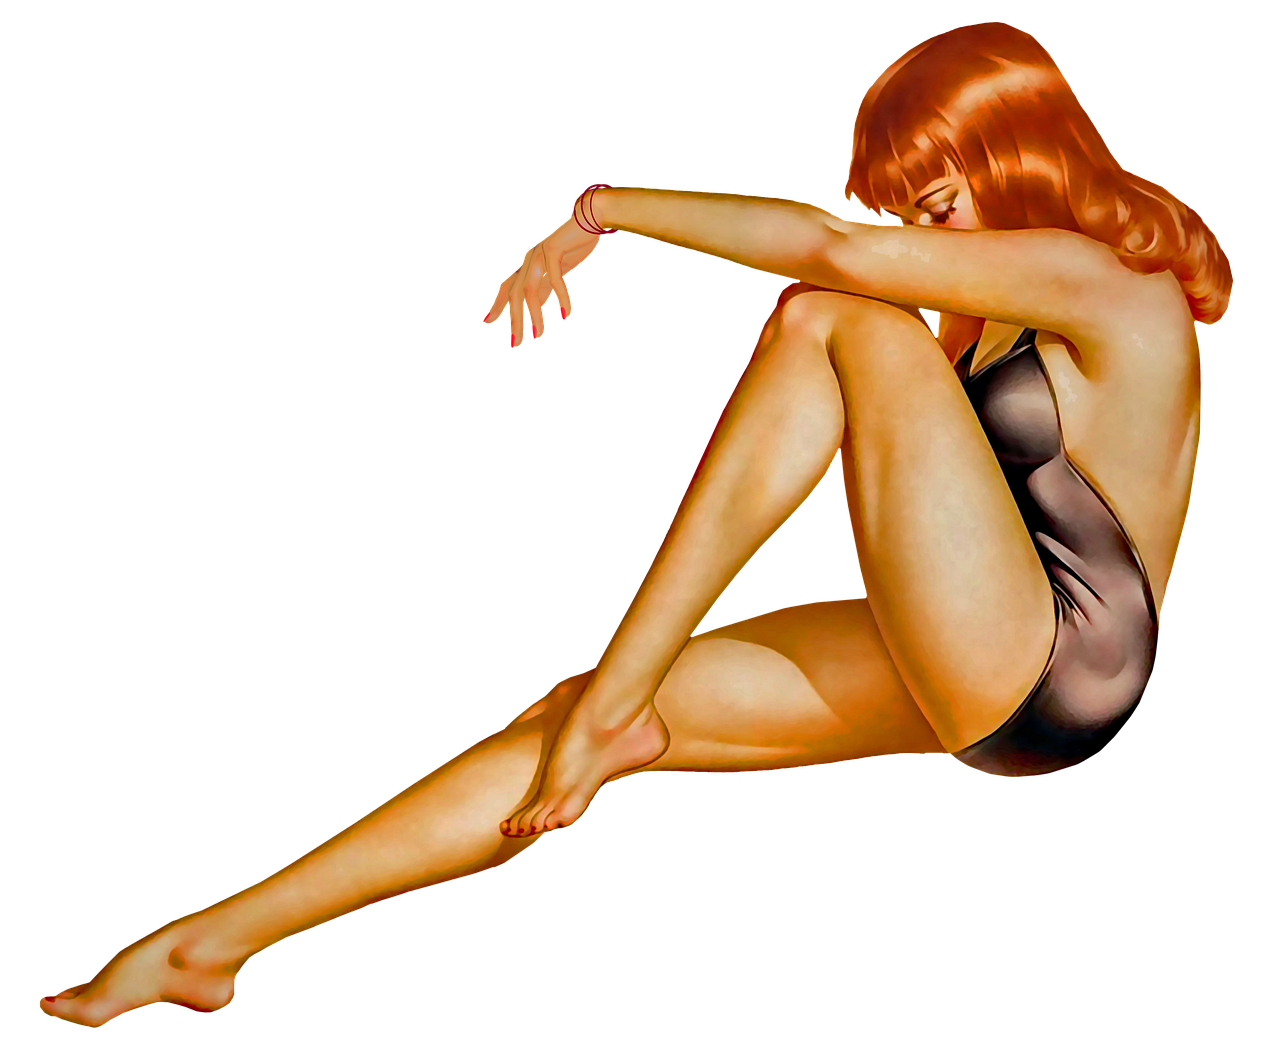 rothaarige pin up girls